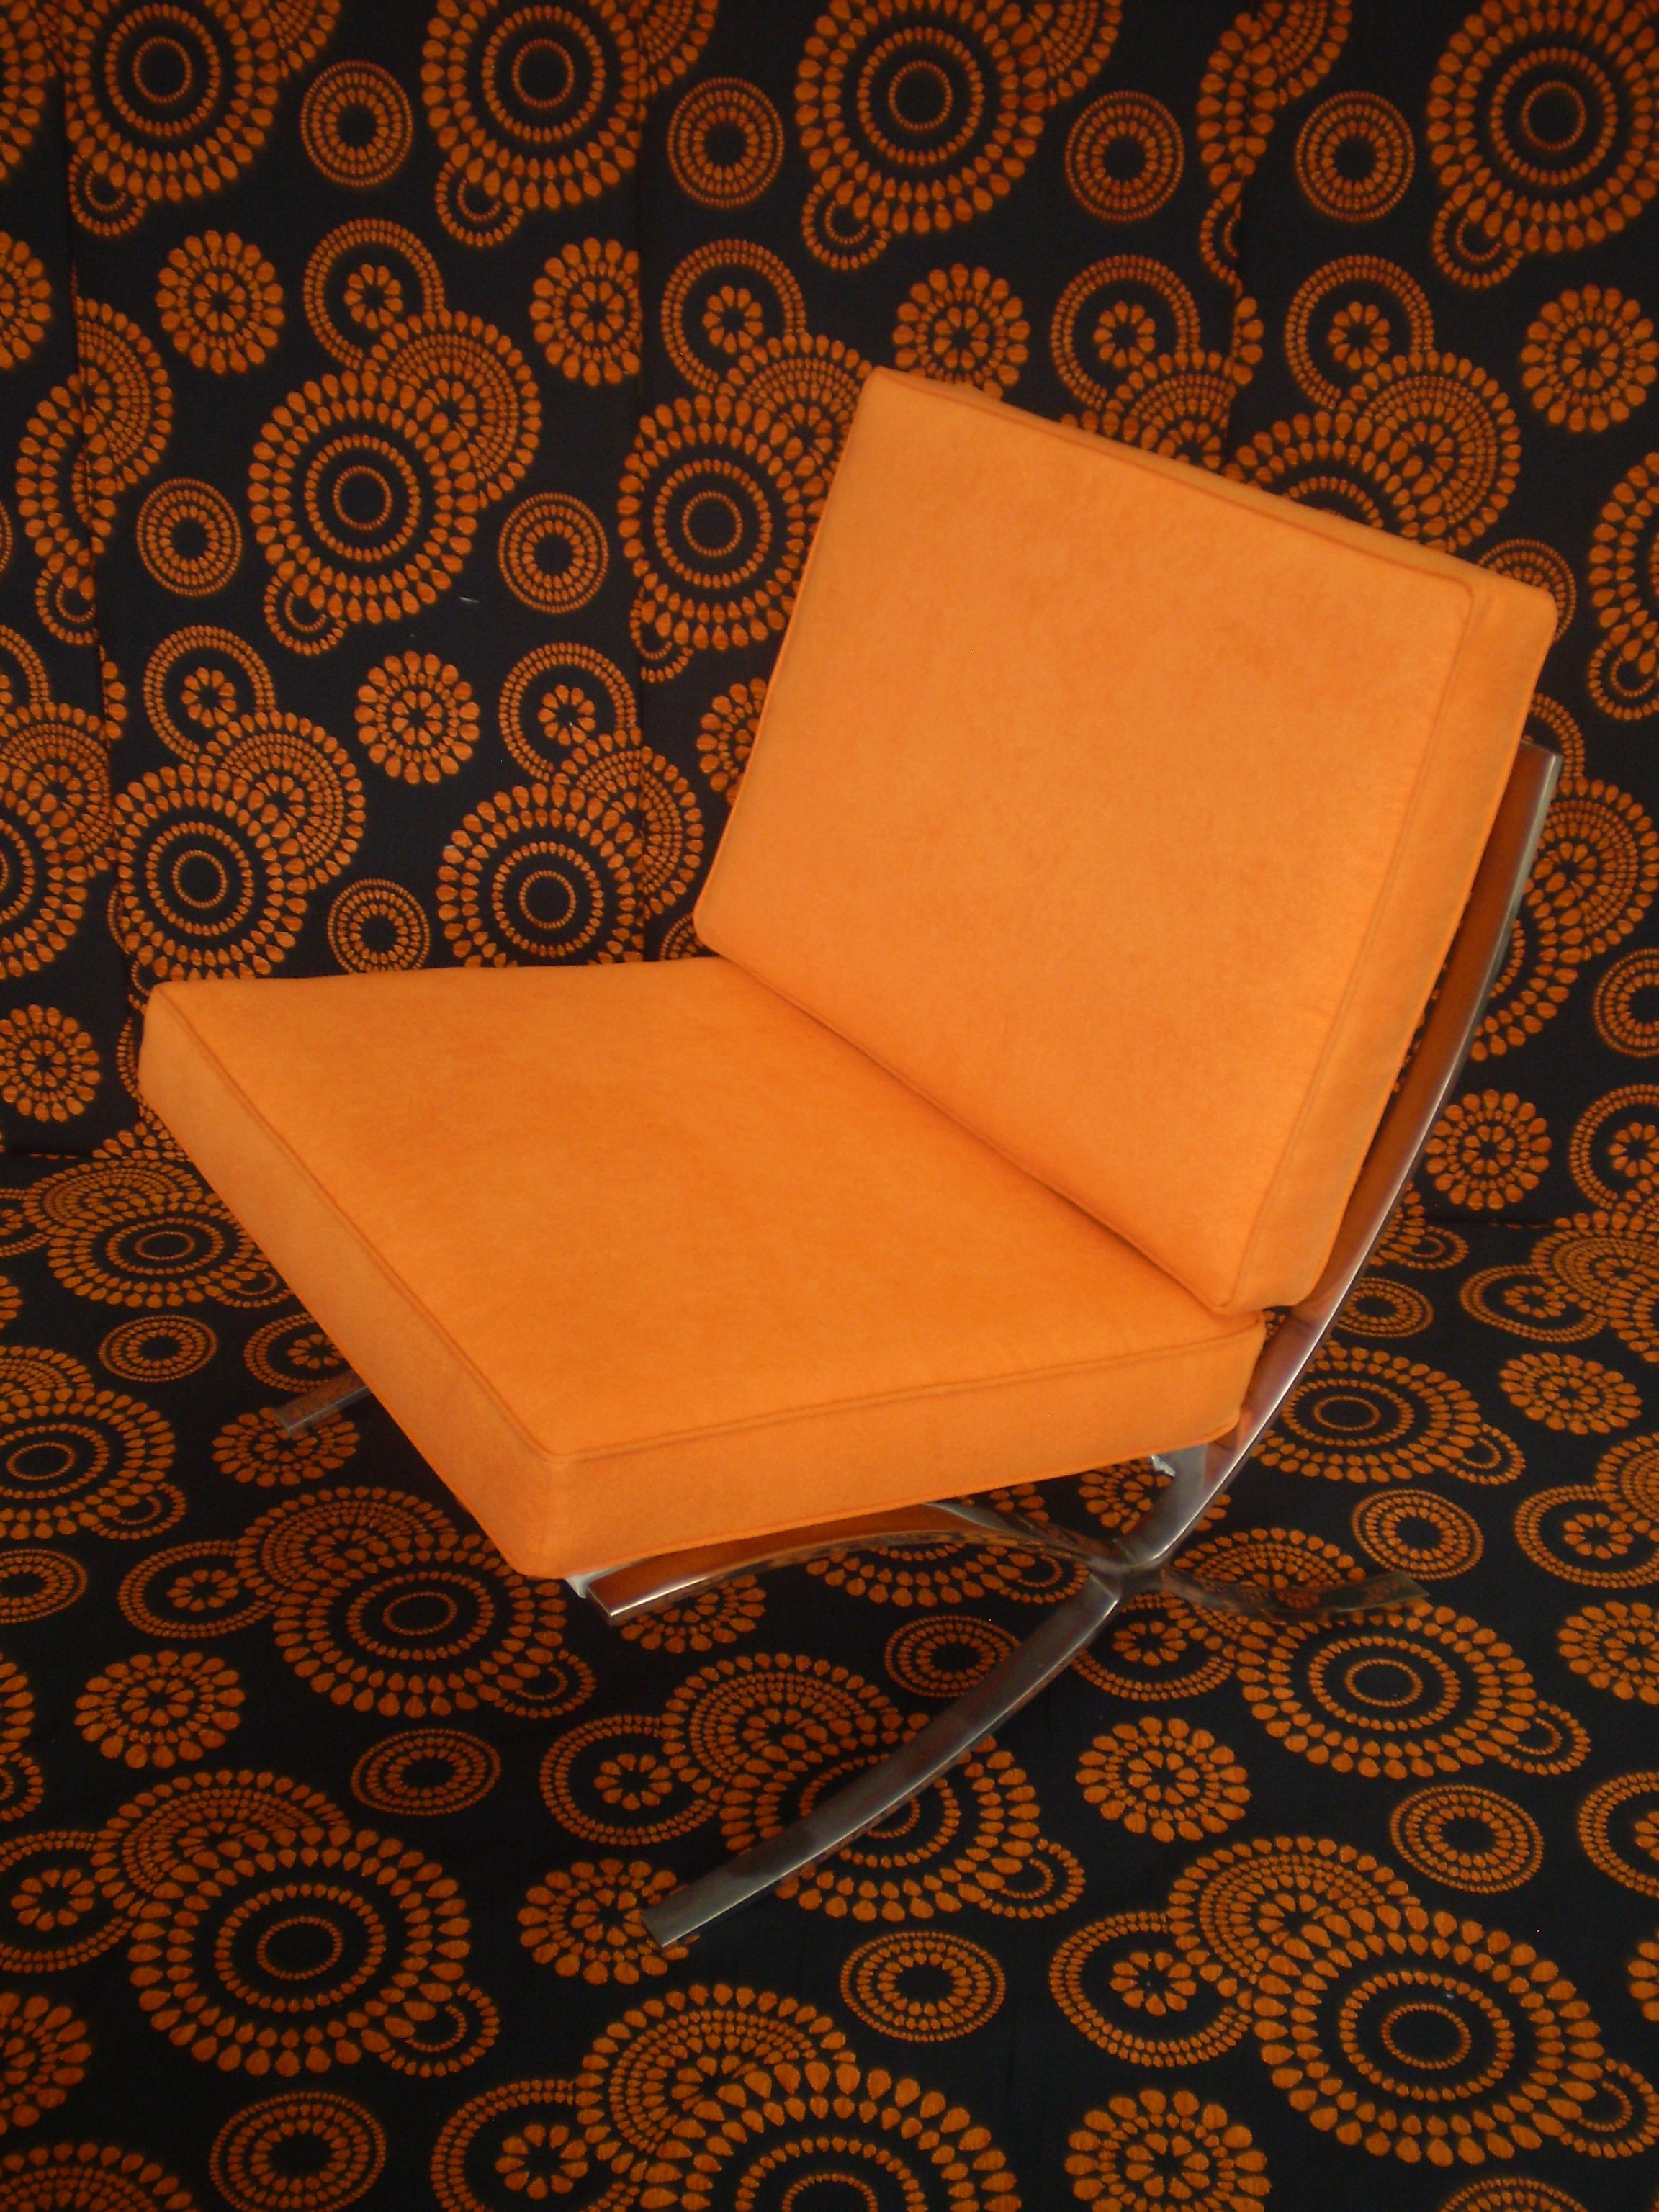 Barcelona Chair Reupholstered By Jaro Upholstery Melbourne Reupholster Mod Furniture Chair